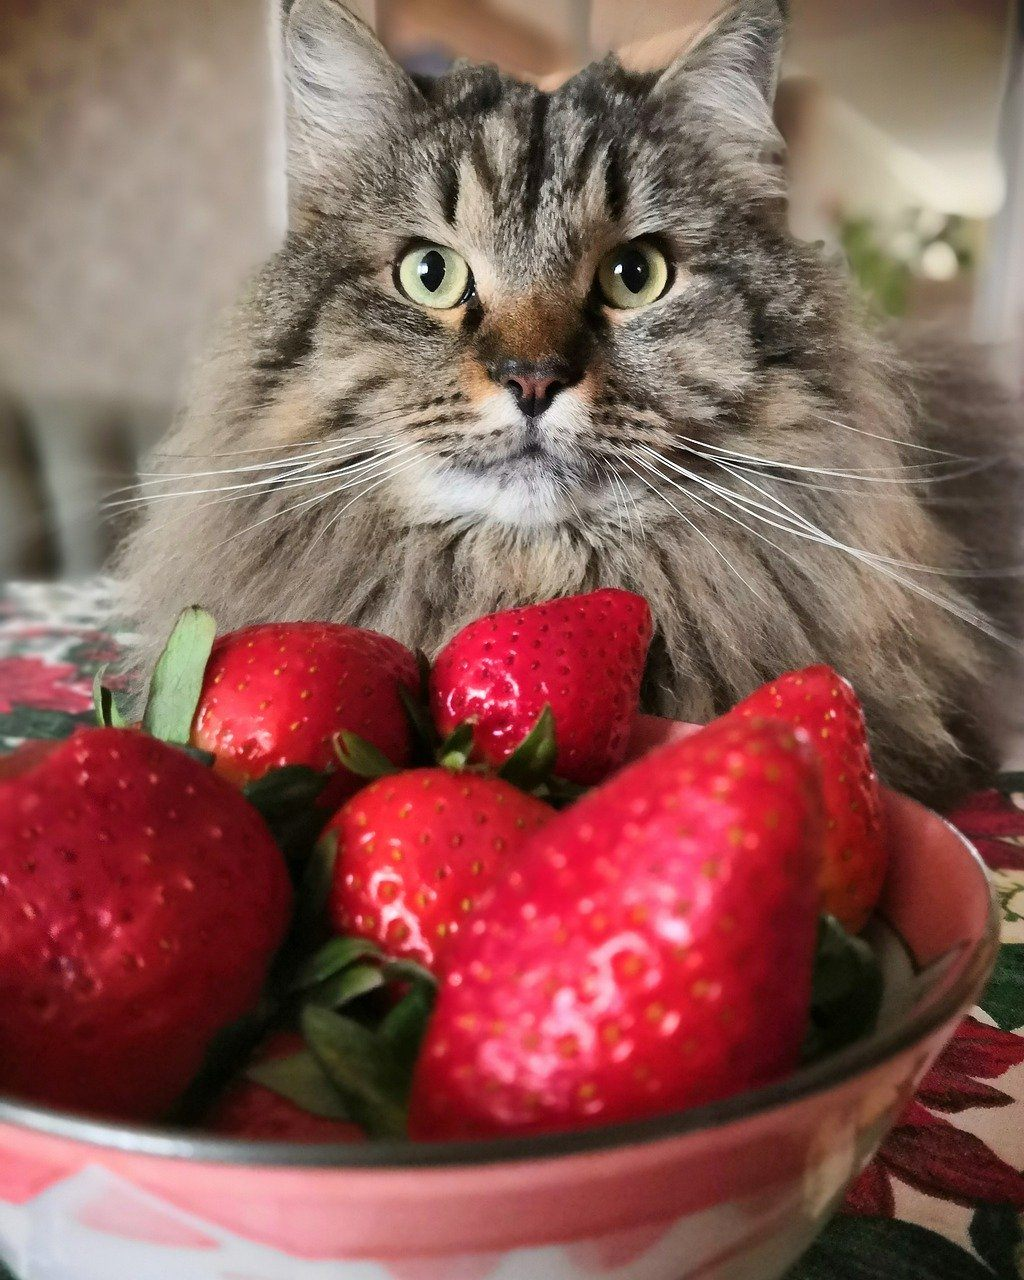 cat and strawberries